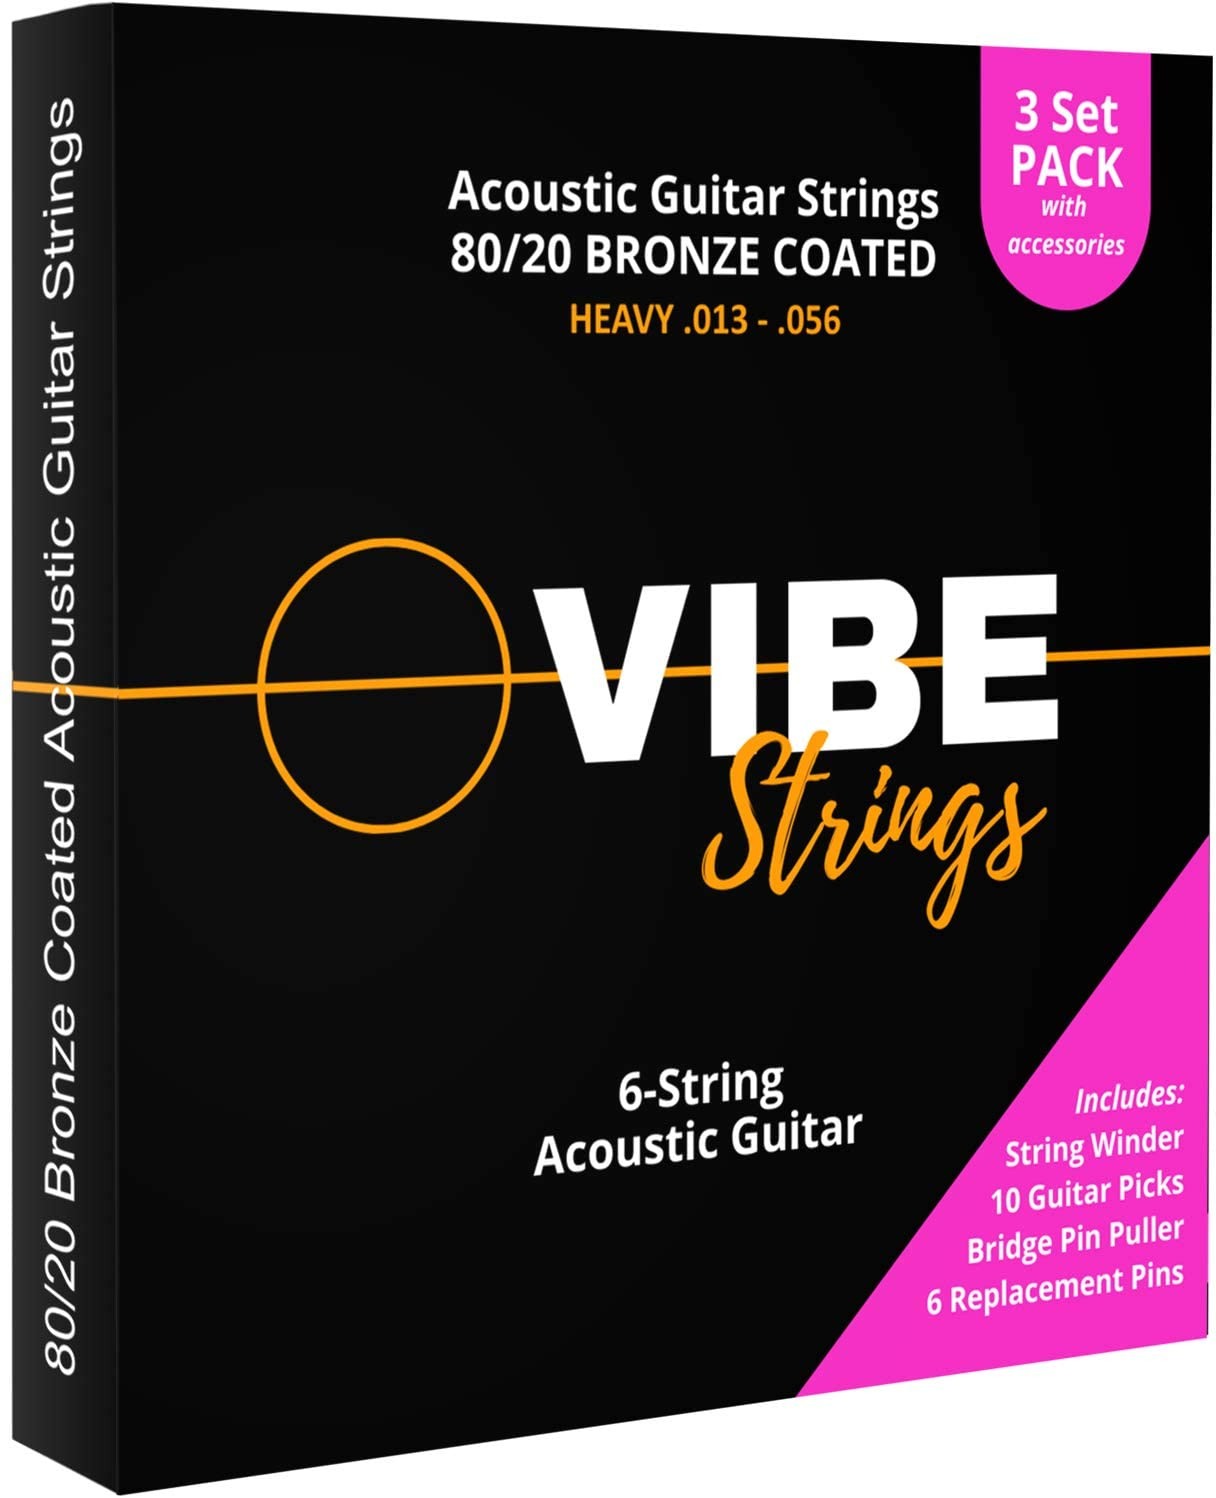 VIBE Strings Acoustic Guitar Strings, 80/20 Bronze Coated Acoustic Strings Heavy (.013-.056), Pack of 3 Sets + Restringing Accessory Pack